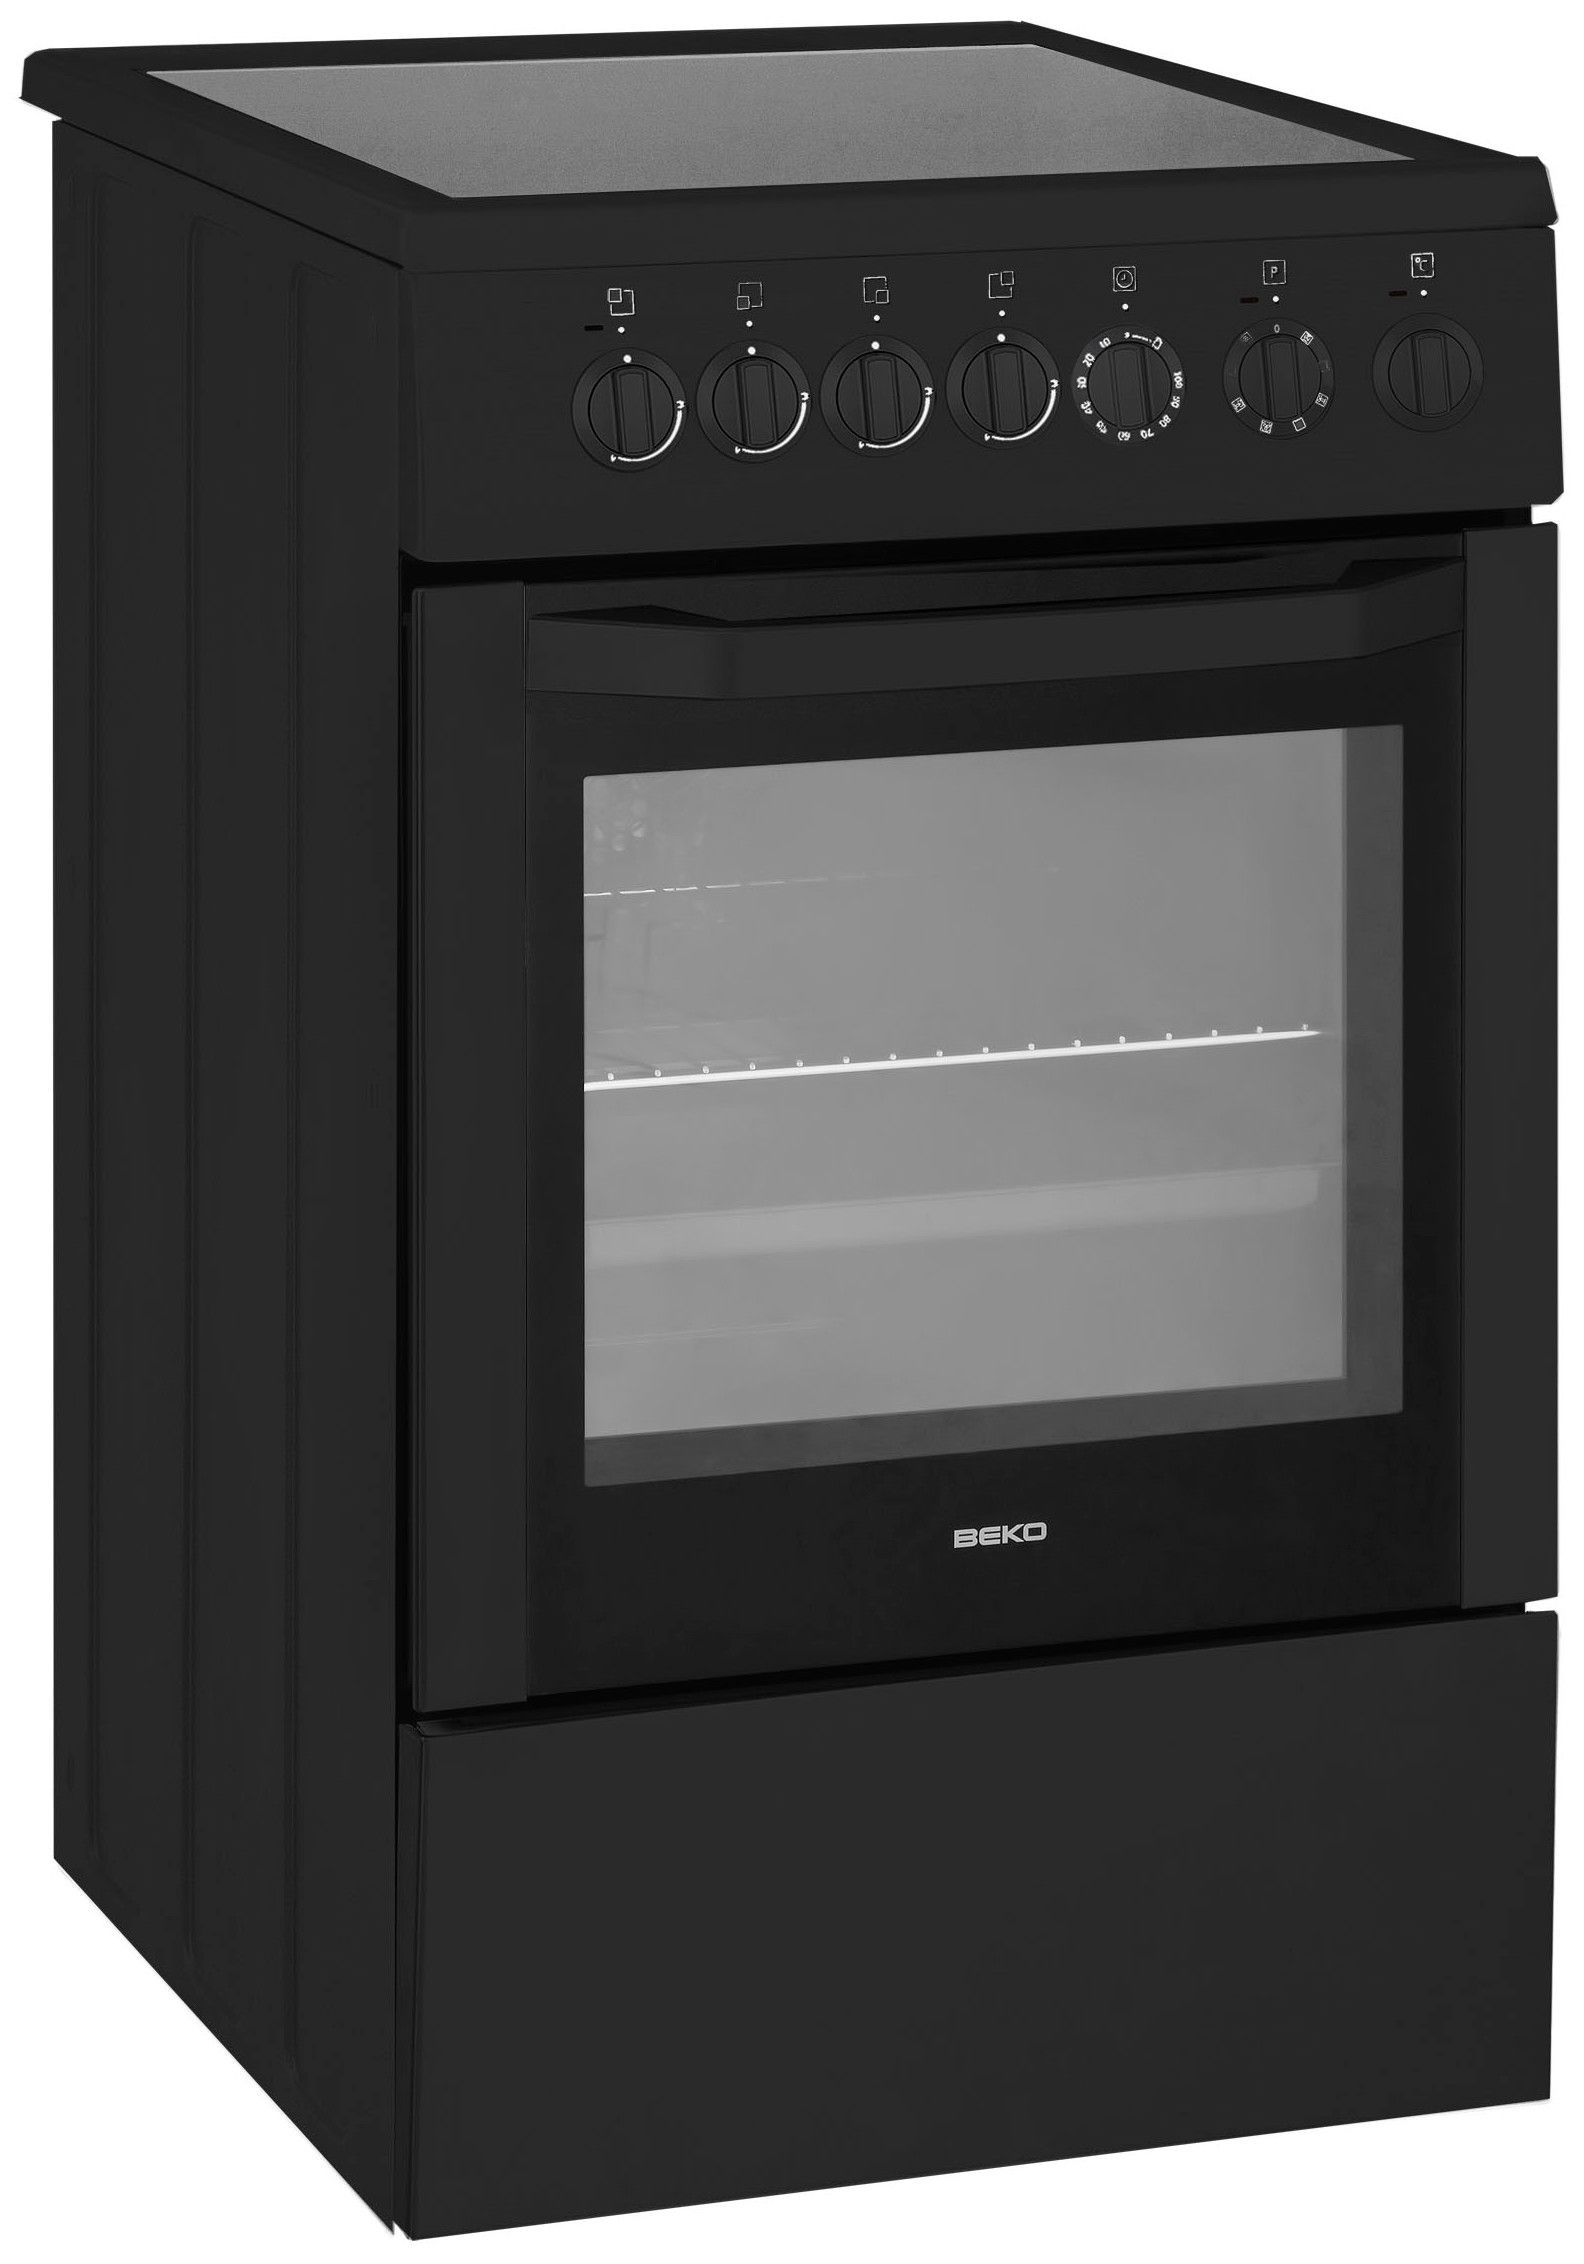 beko css57100ga cuisini re table vitroc ramique 4 foyers. Black Bedroom Furniture Sets. Home Design Ideas